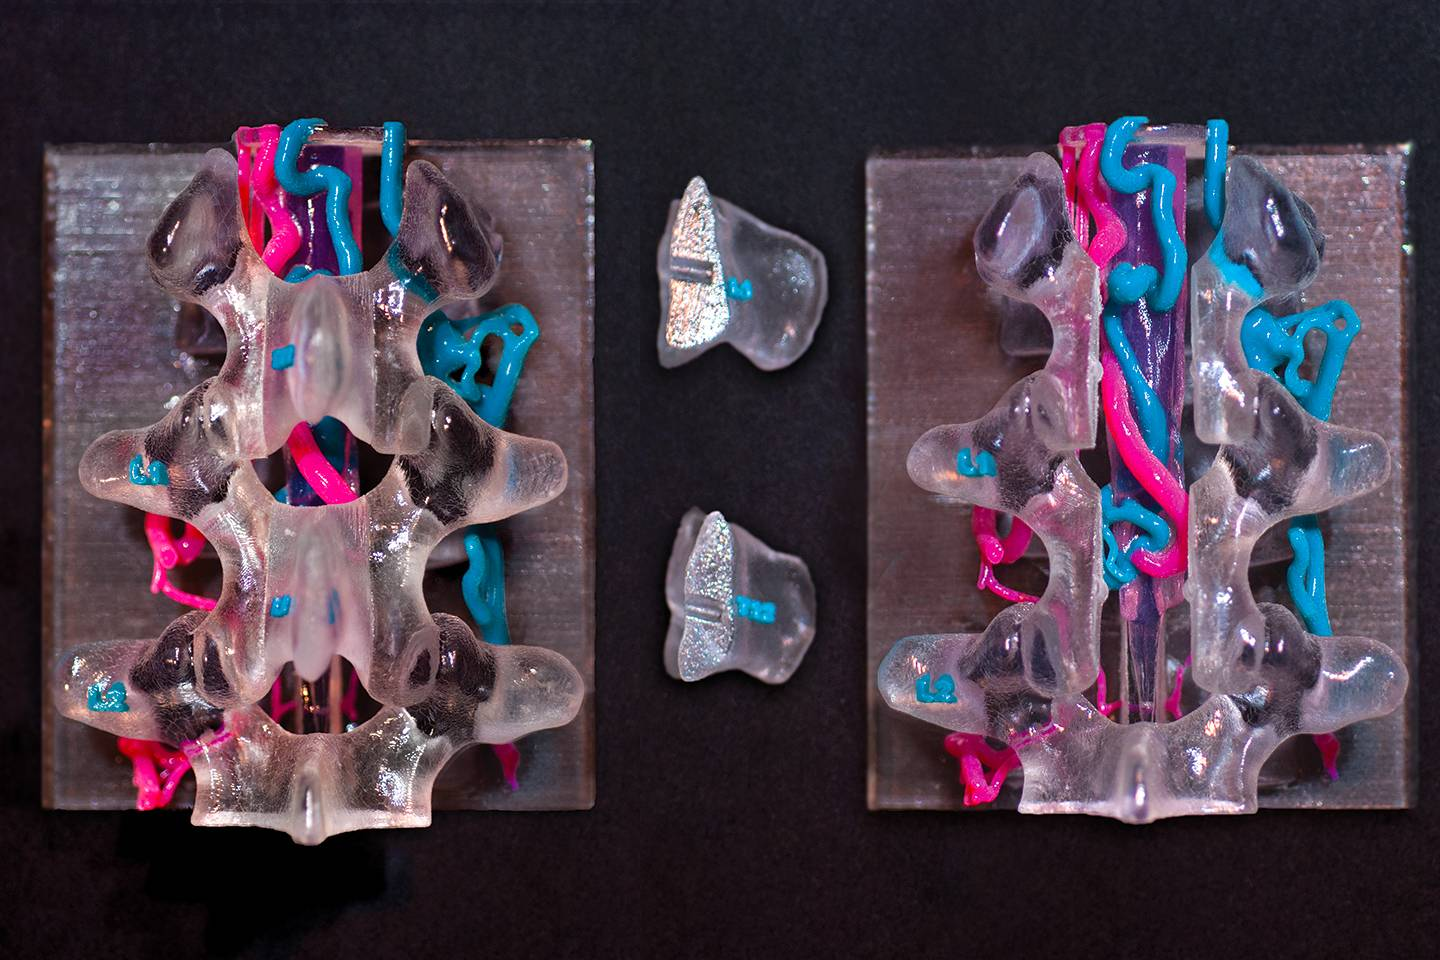 3D printed spine and veins